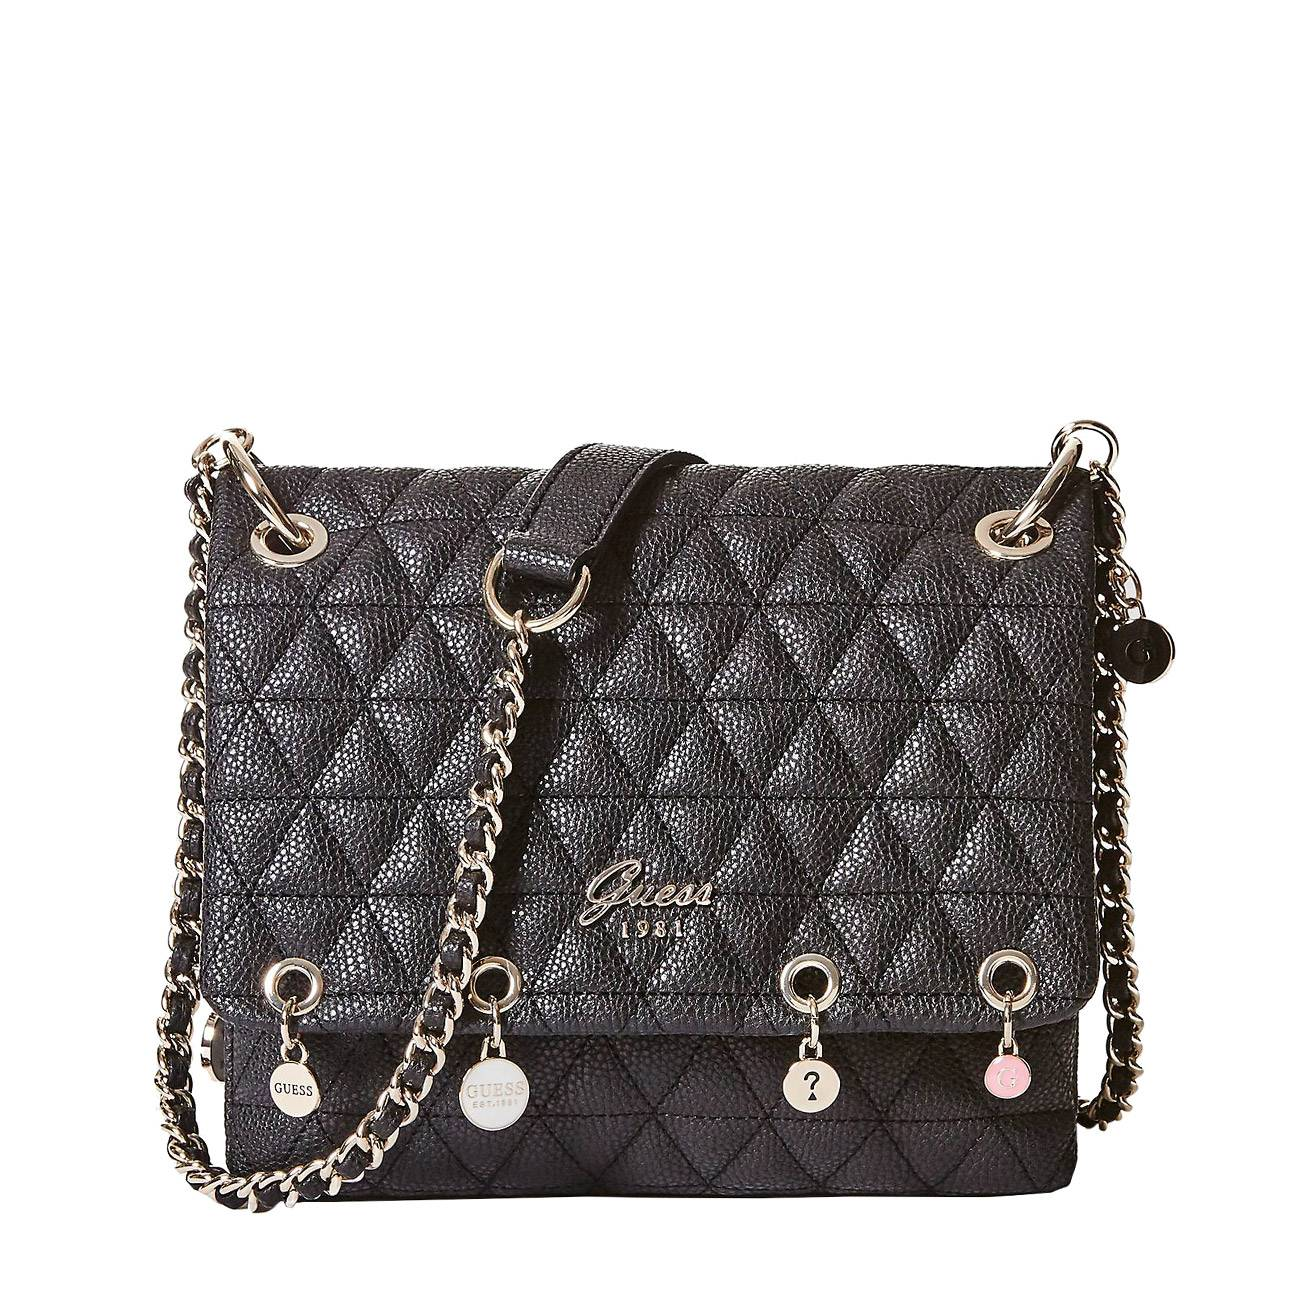 QUILTED-LOOK CROSSBODY BAG